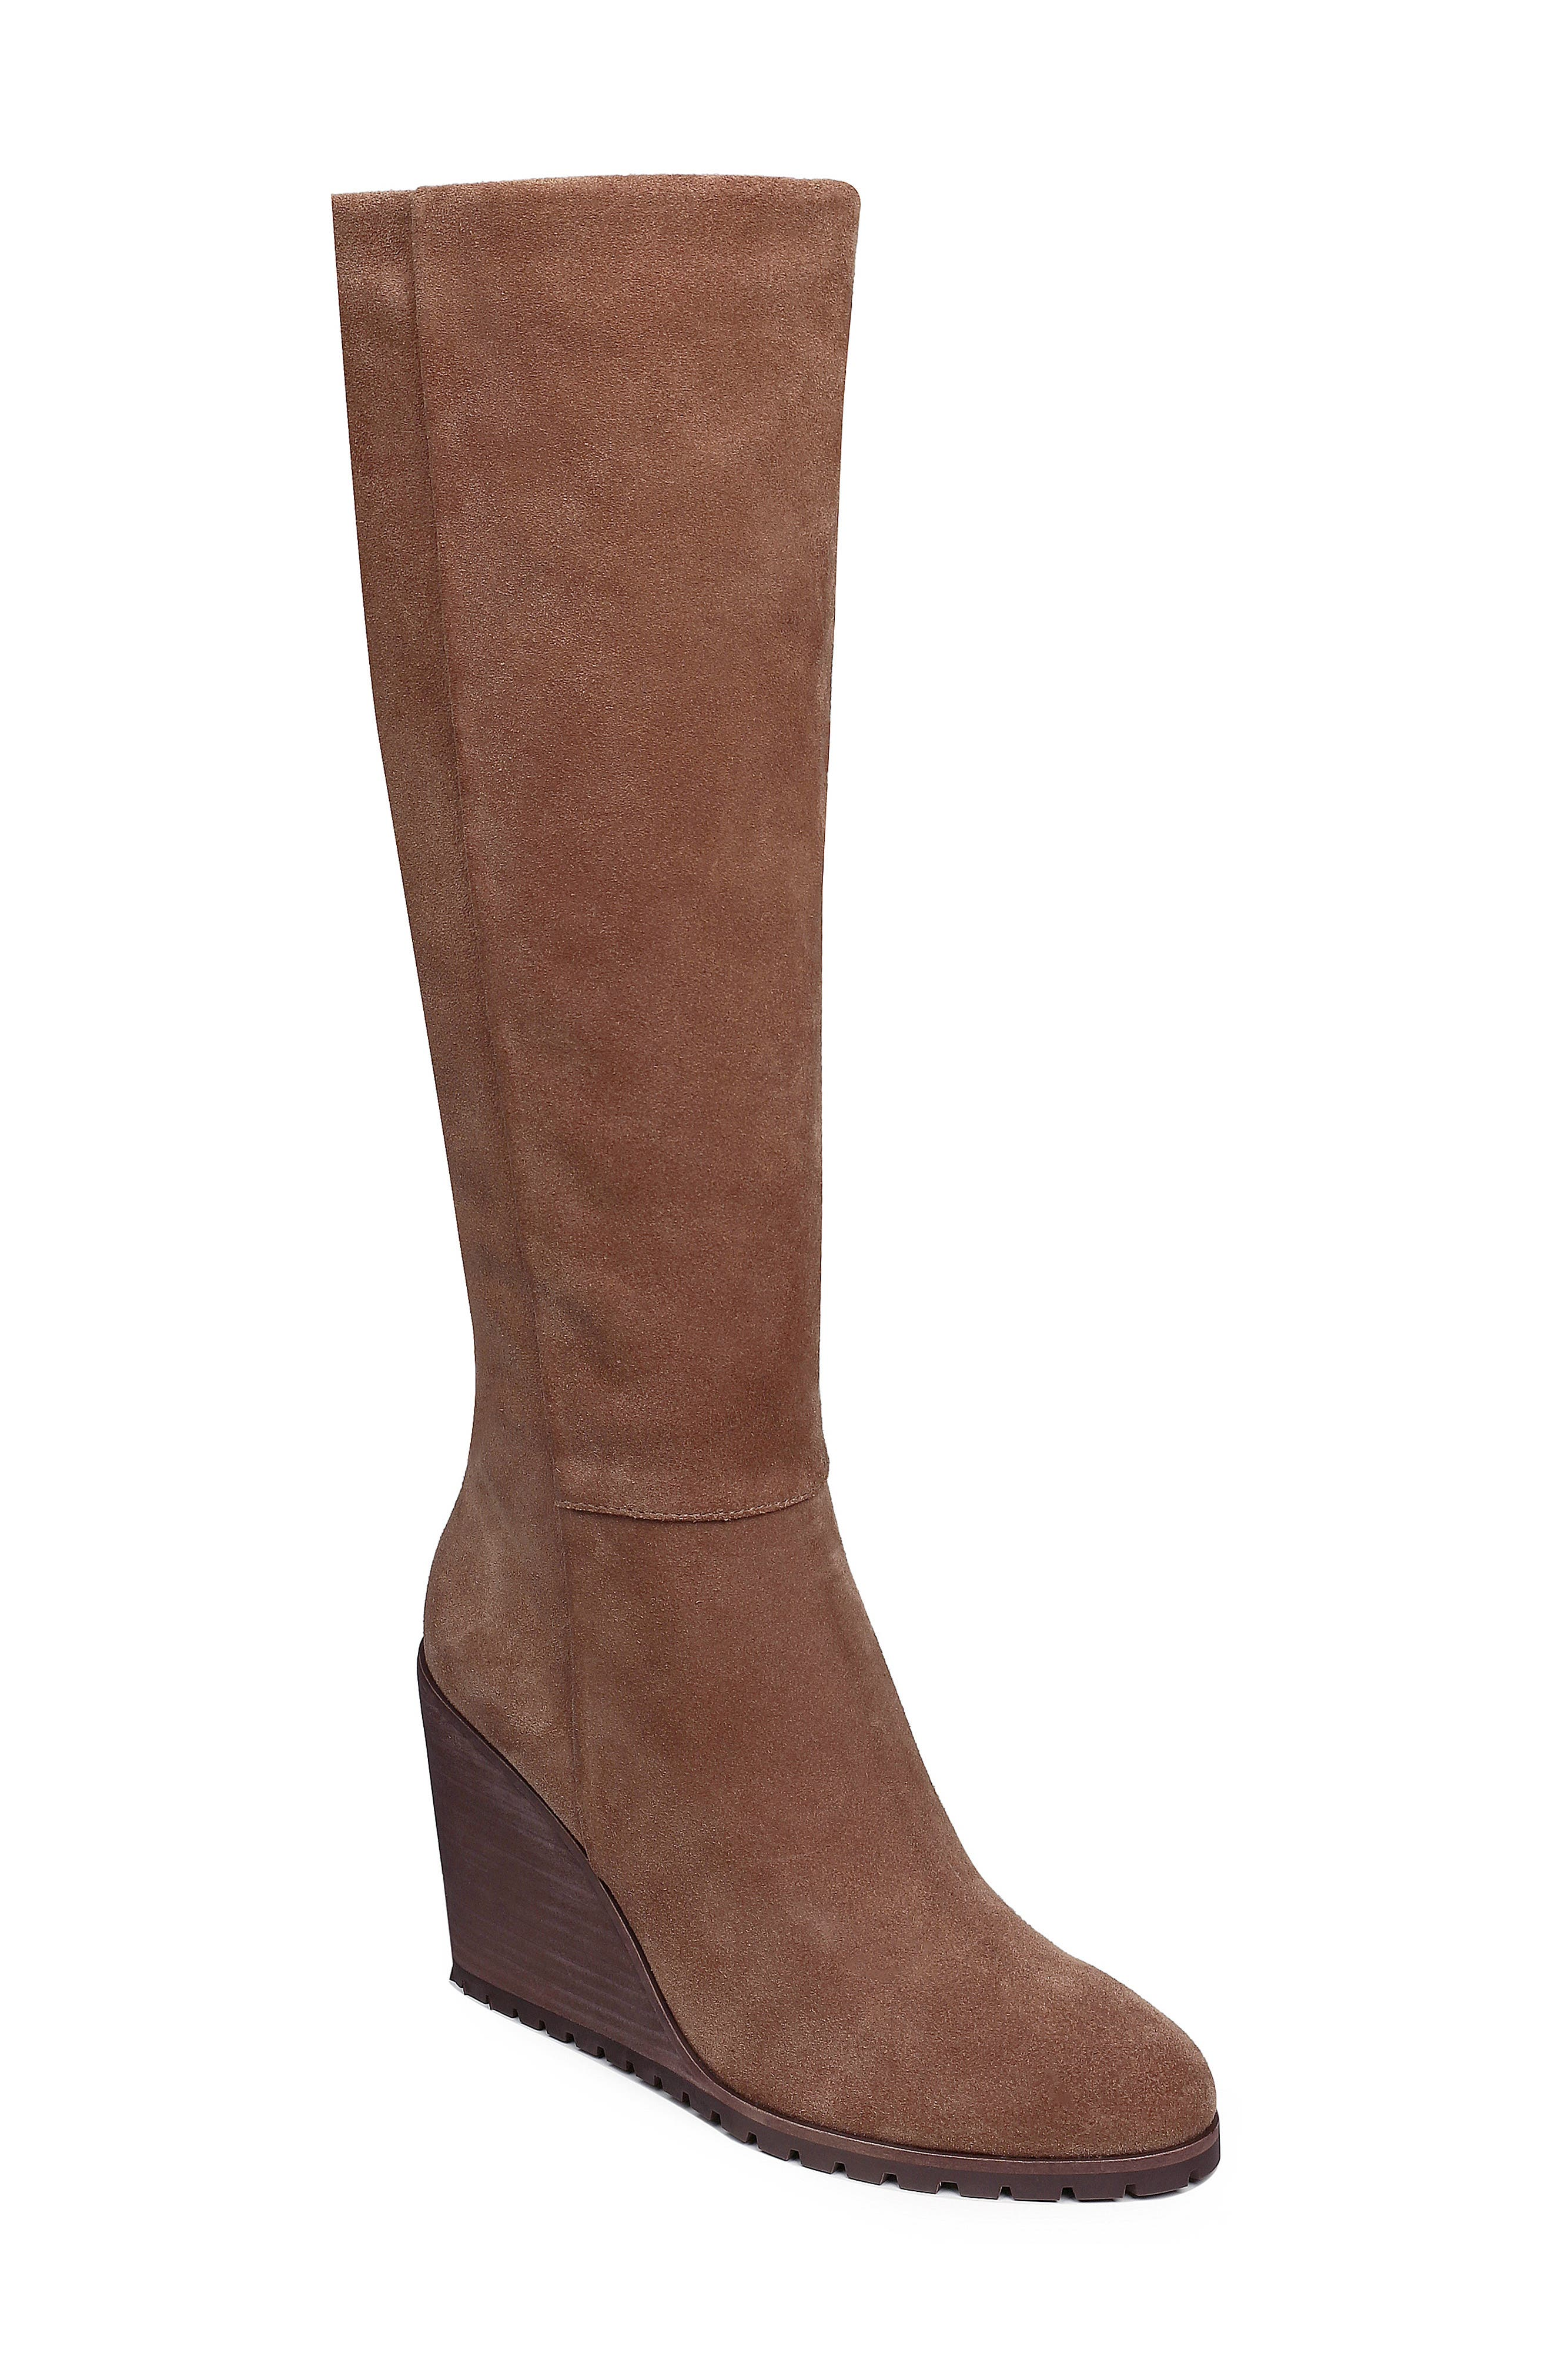 Cleveland Wedge Boot,                         Main,                         color, LIGHT BROWN SUEDE